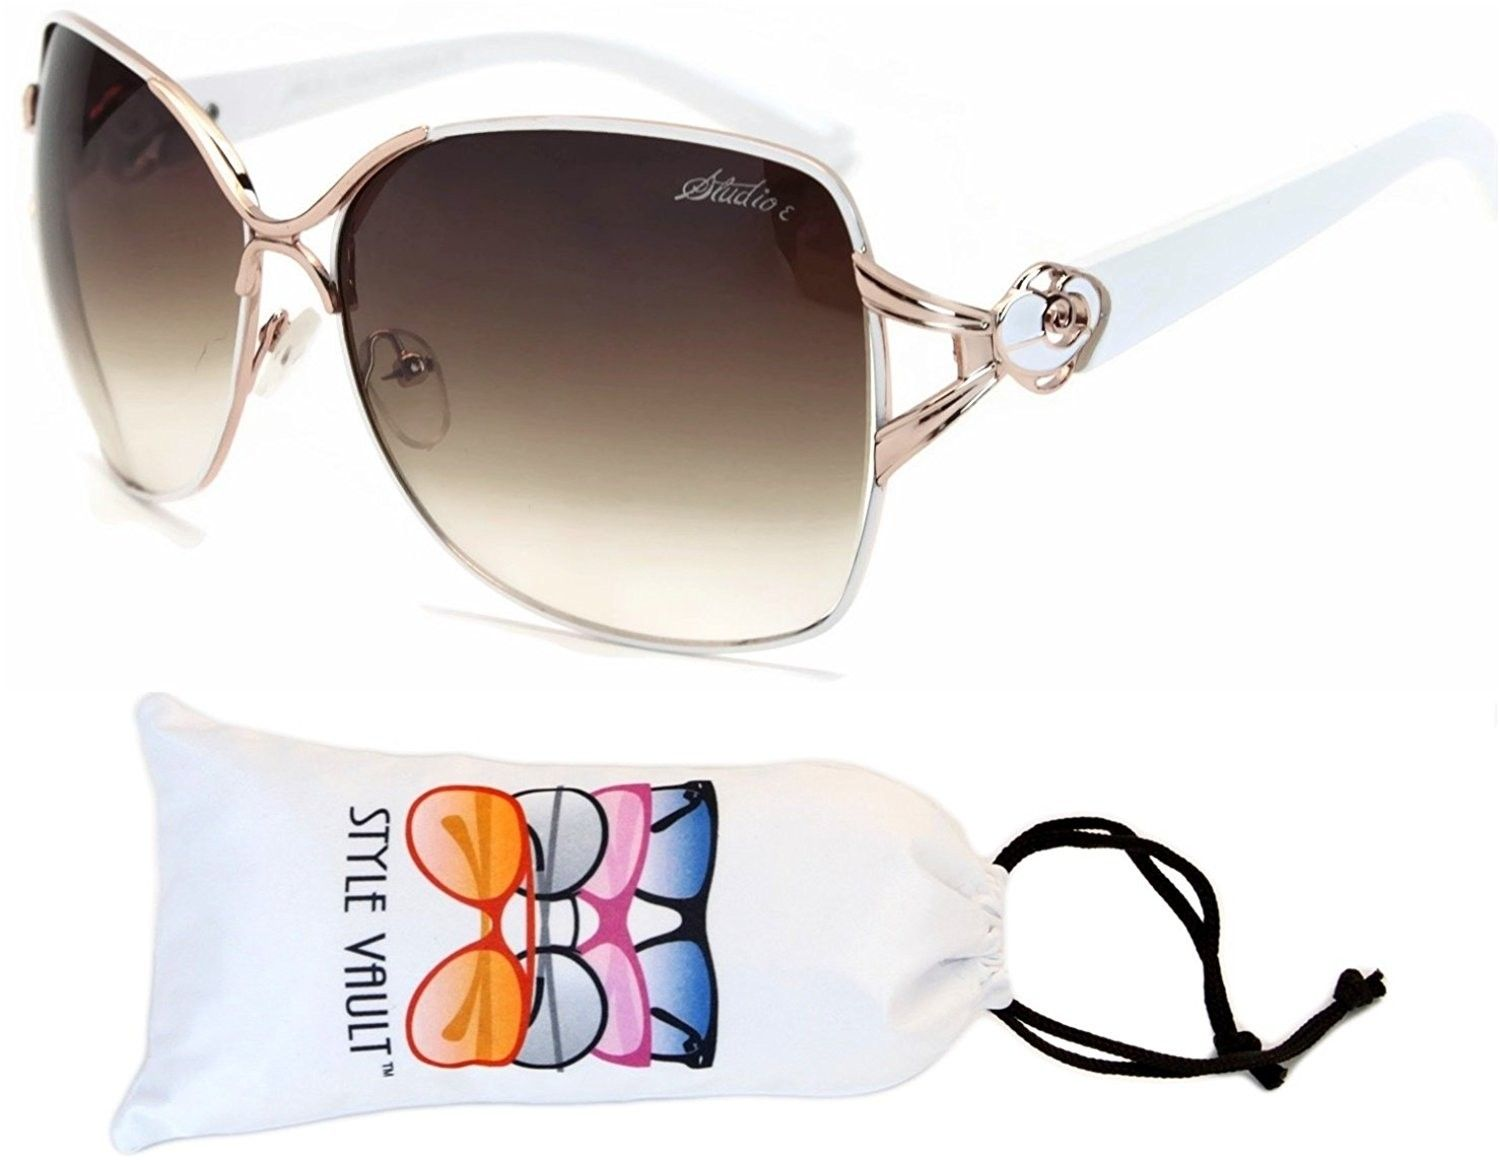 b99cc70e7f V172-vp Polygon Butterfly Sunglasses - T2500h Gold White-brown -  C112EM3D03V -